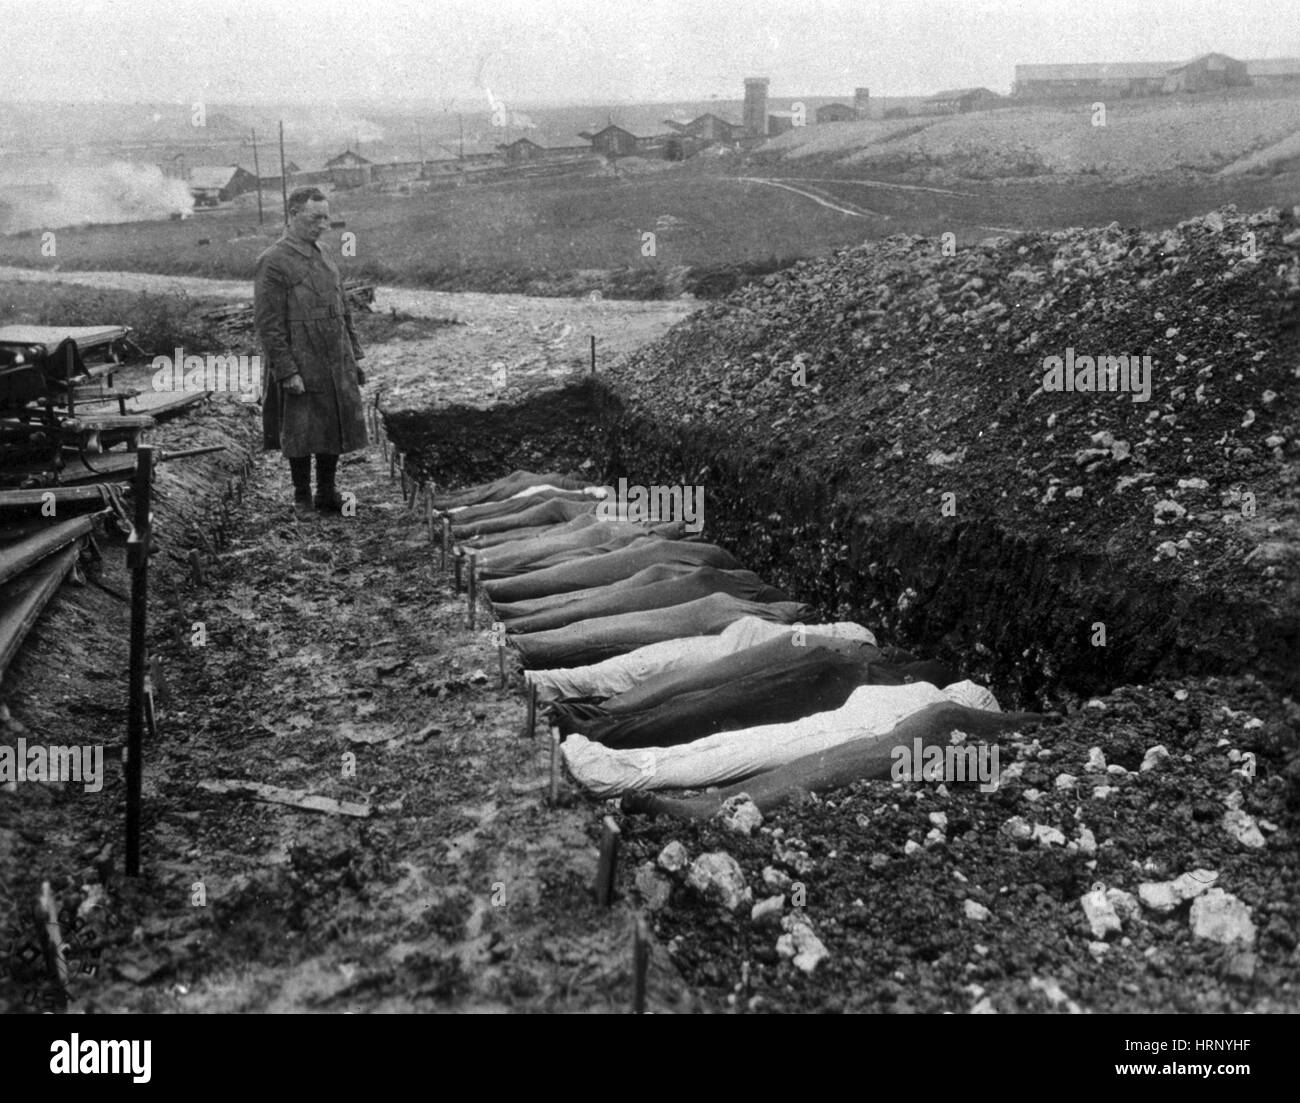 WWI, Chaplain Conducts Burial Service, 1918 - Stock Image